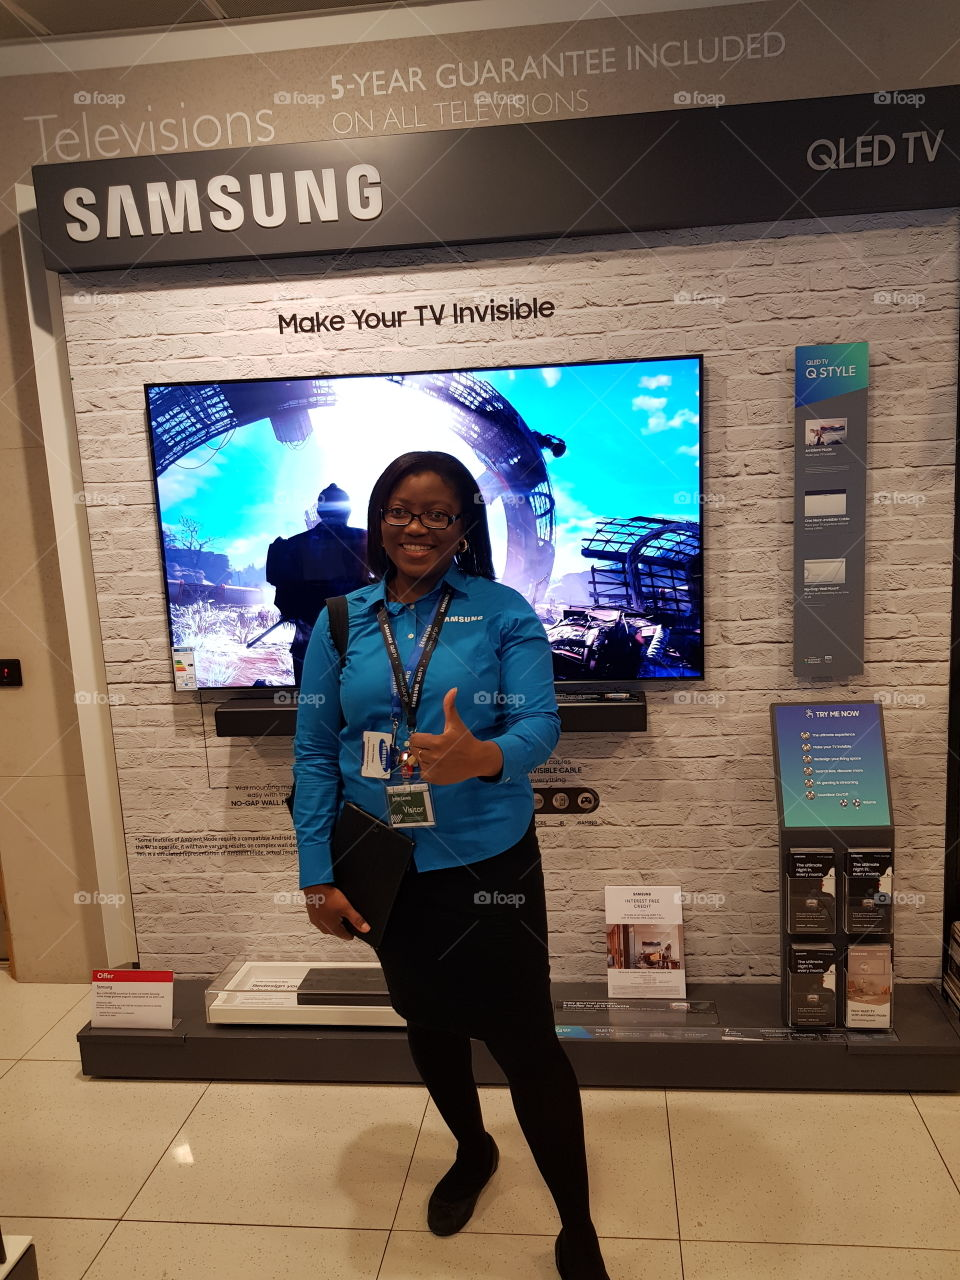 Woman posing in front of the Samsung QLED television 4K UHD TV with soundbar